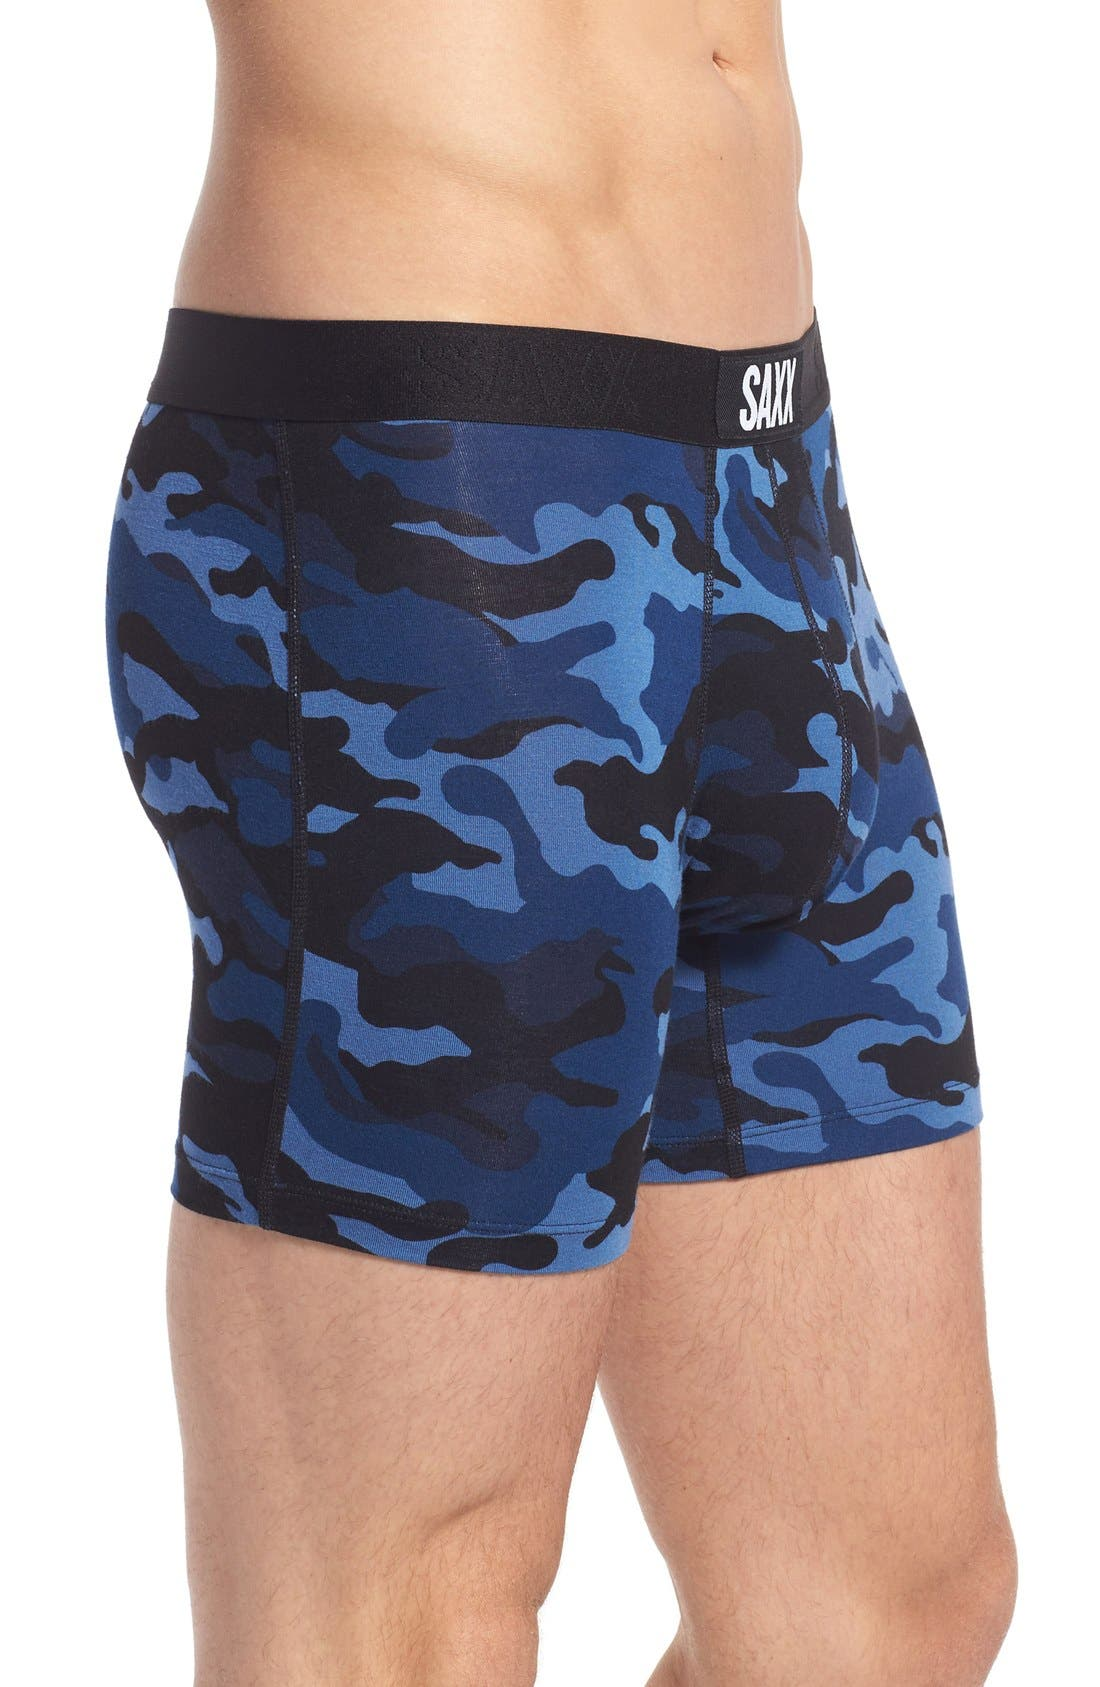 Vibe Stretch Boxer Briefs,                             Alternate thumbnail 3, color,                             BLUE CAMO